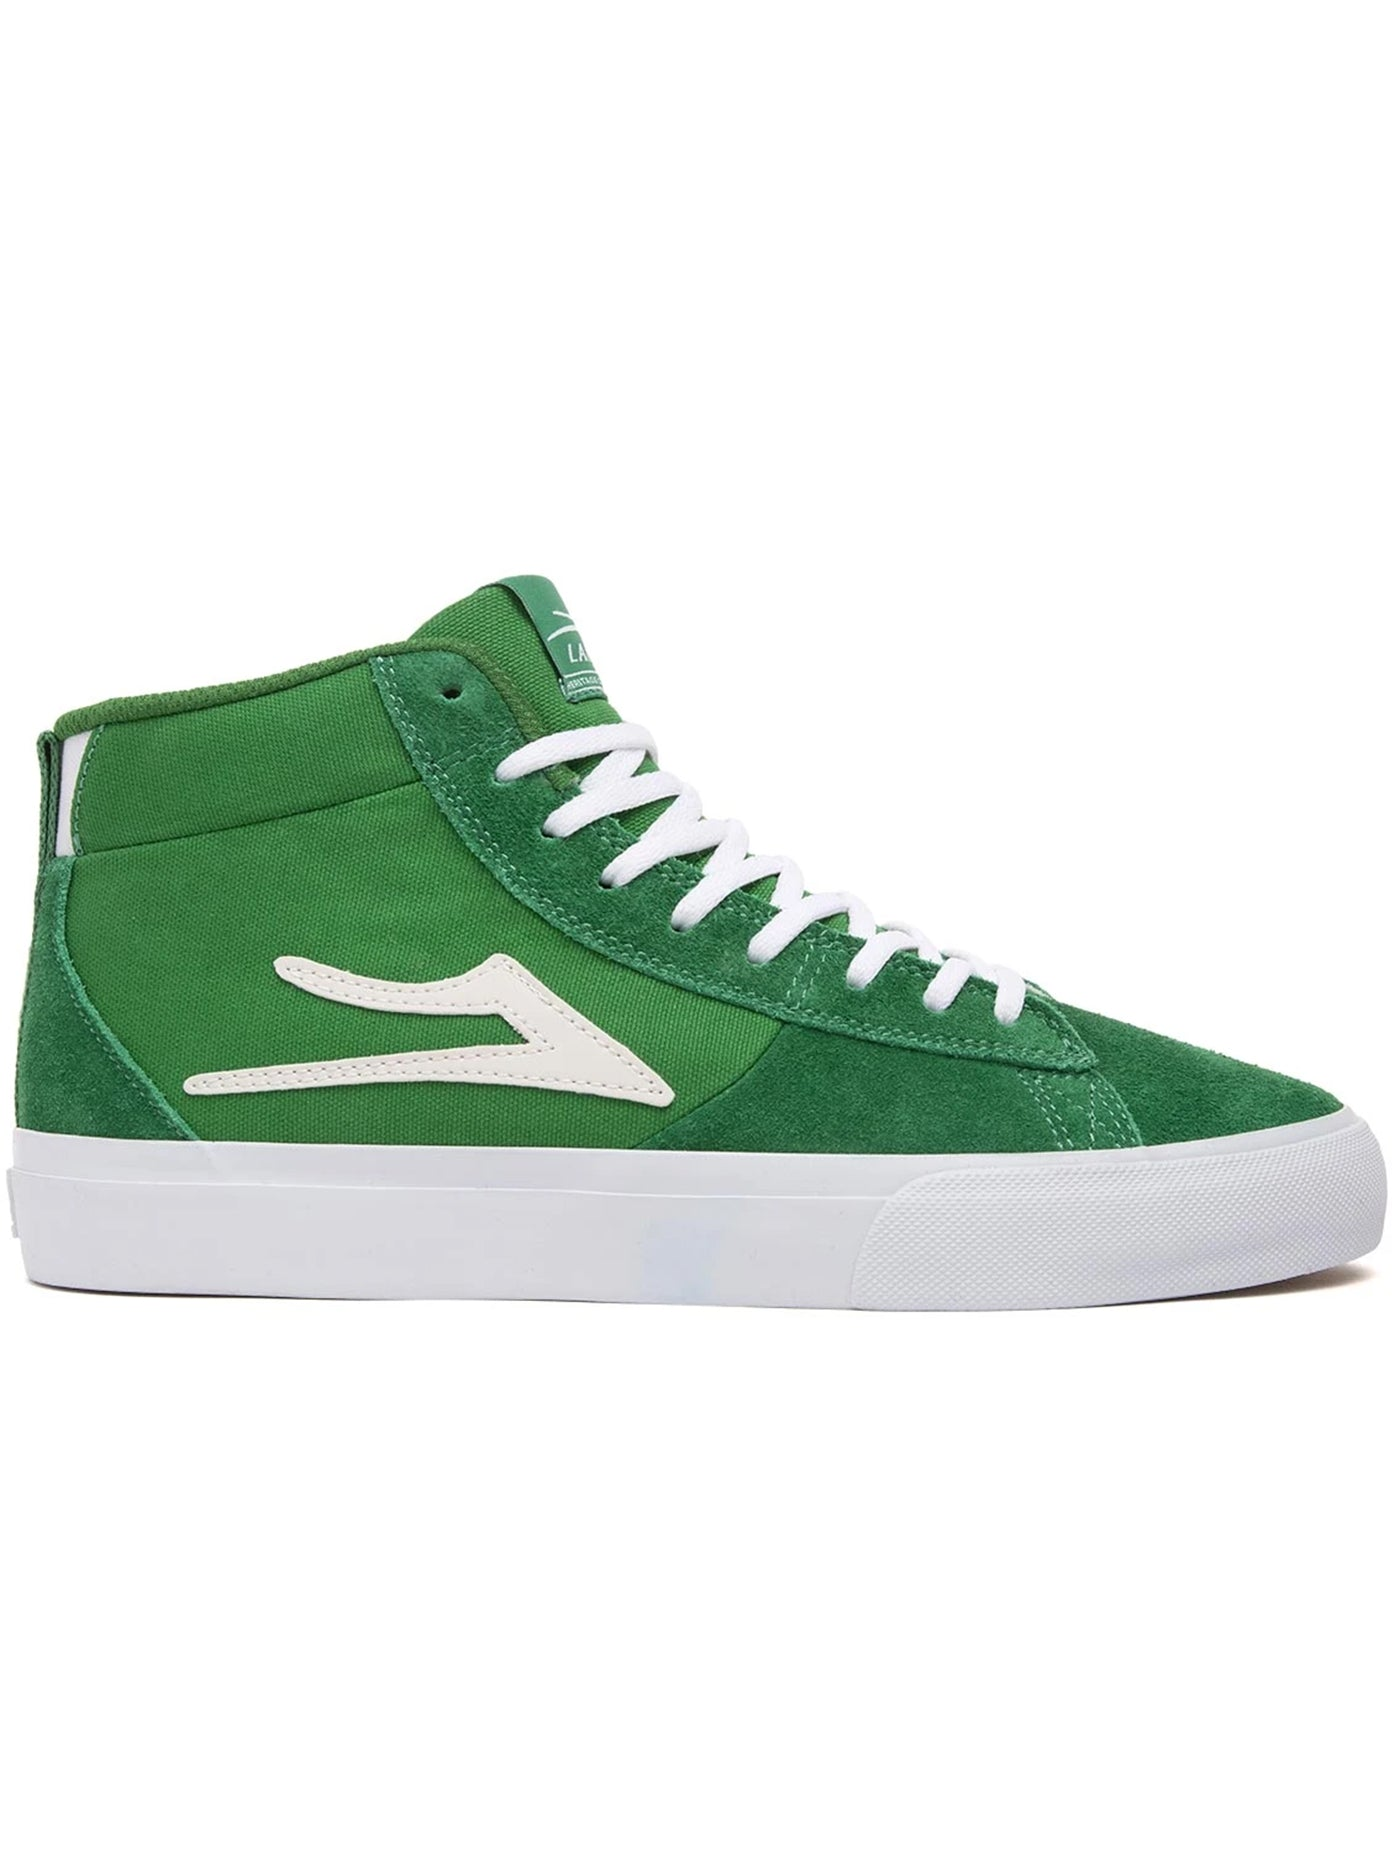 GREEN SUEDE (GRS)